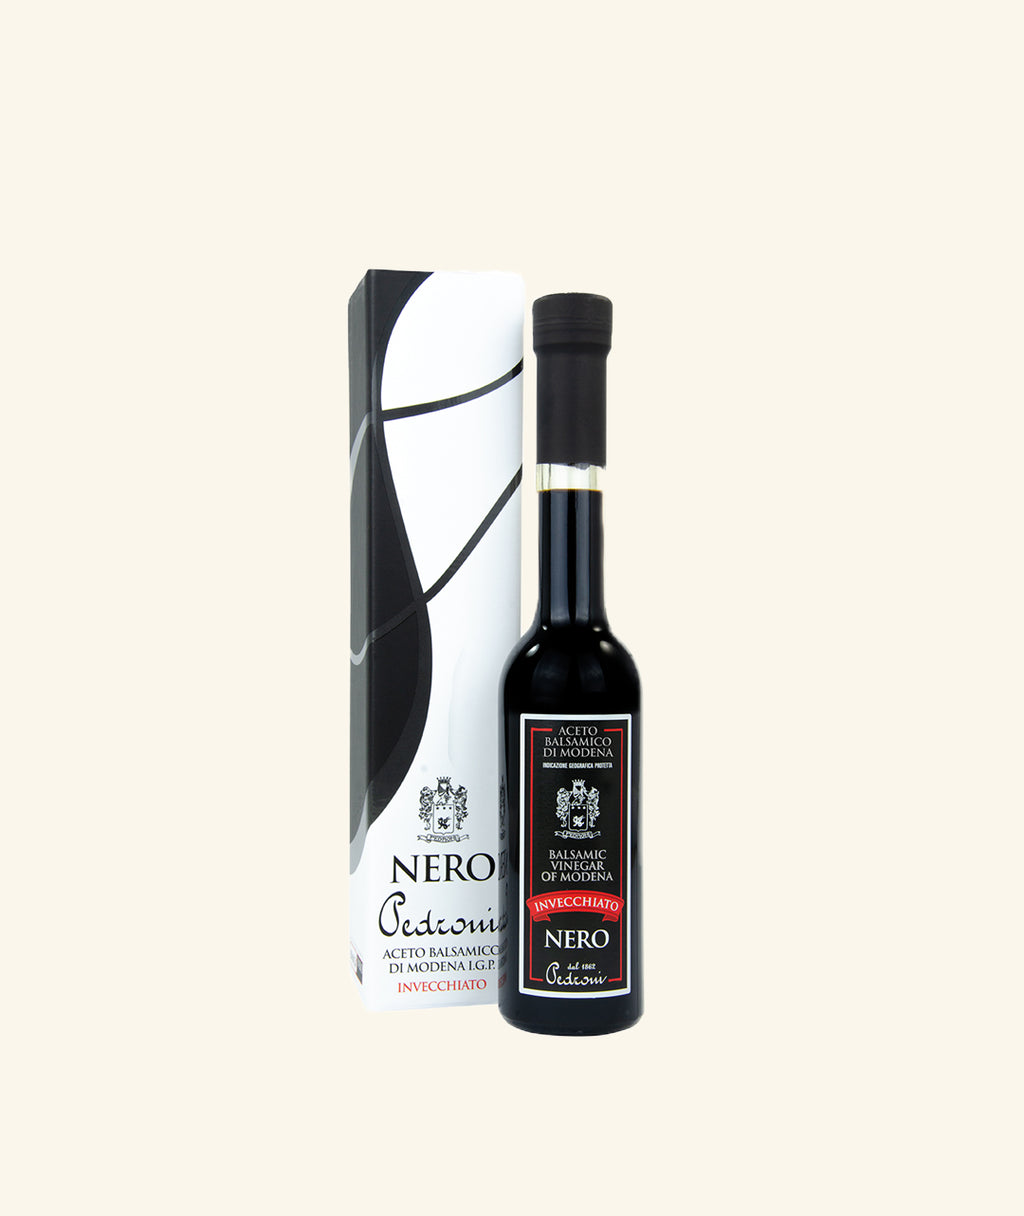 NERO I.G.P Balsamic Vinegar of Modena